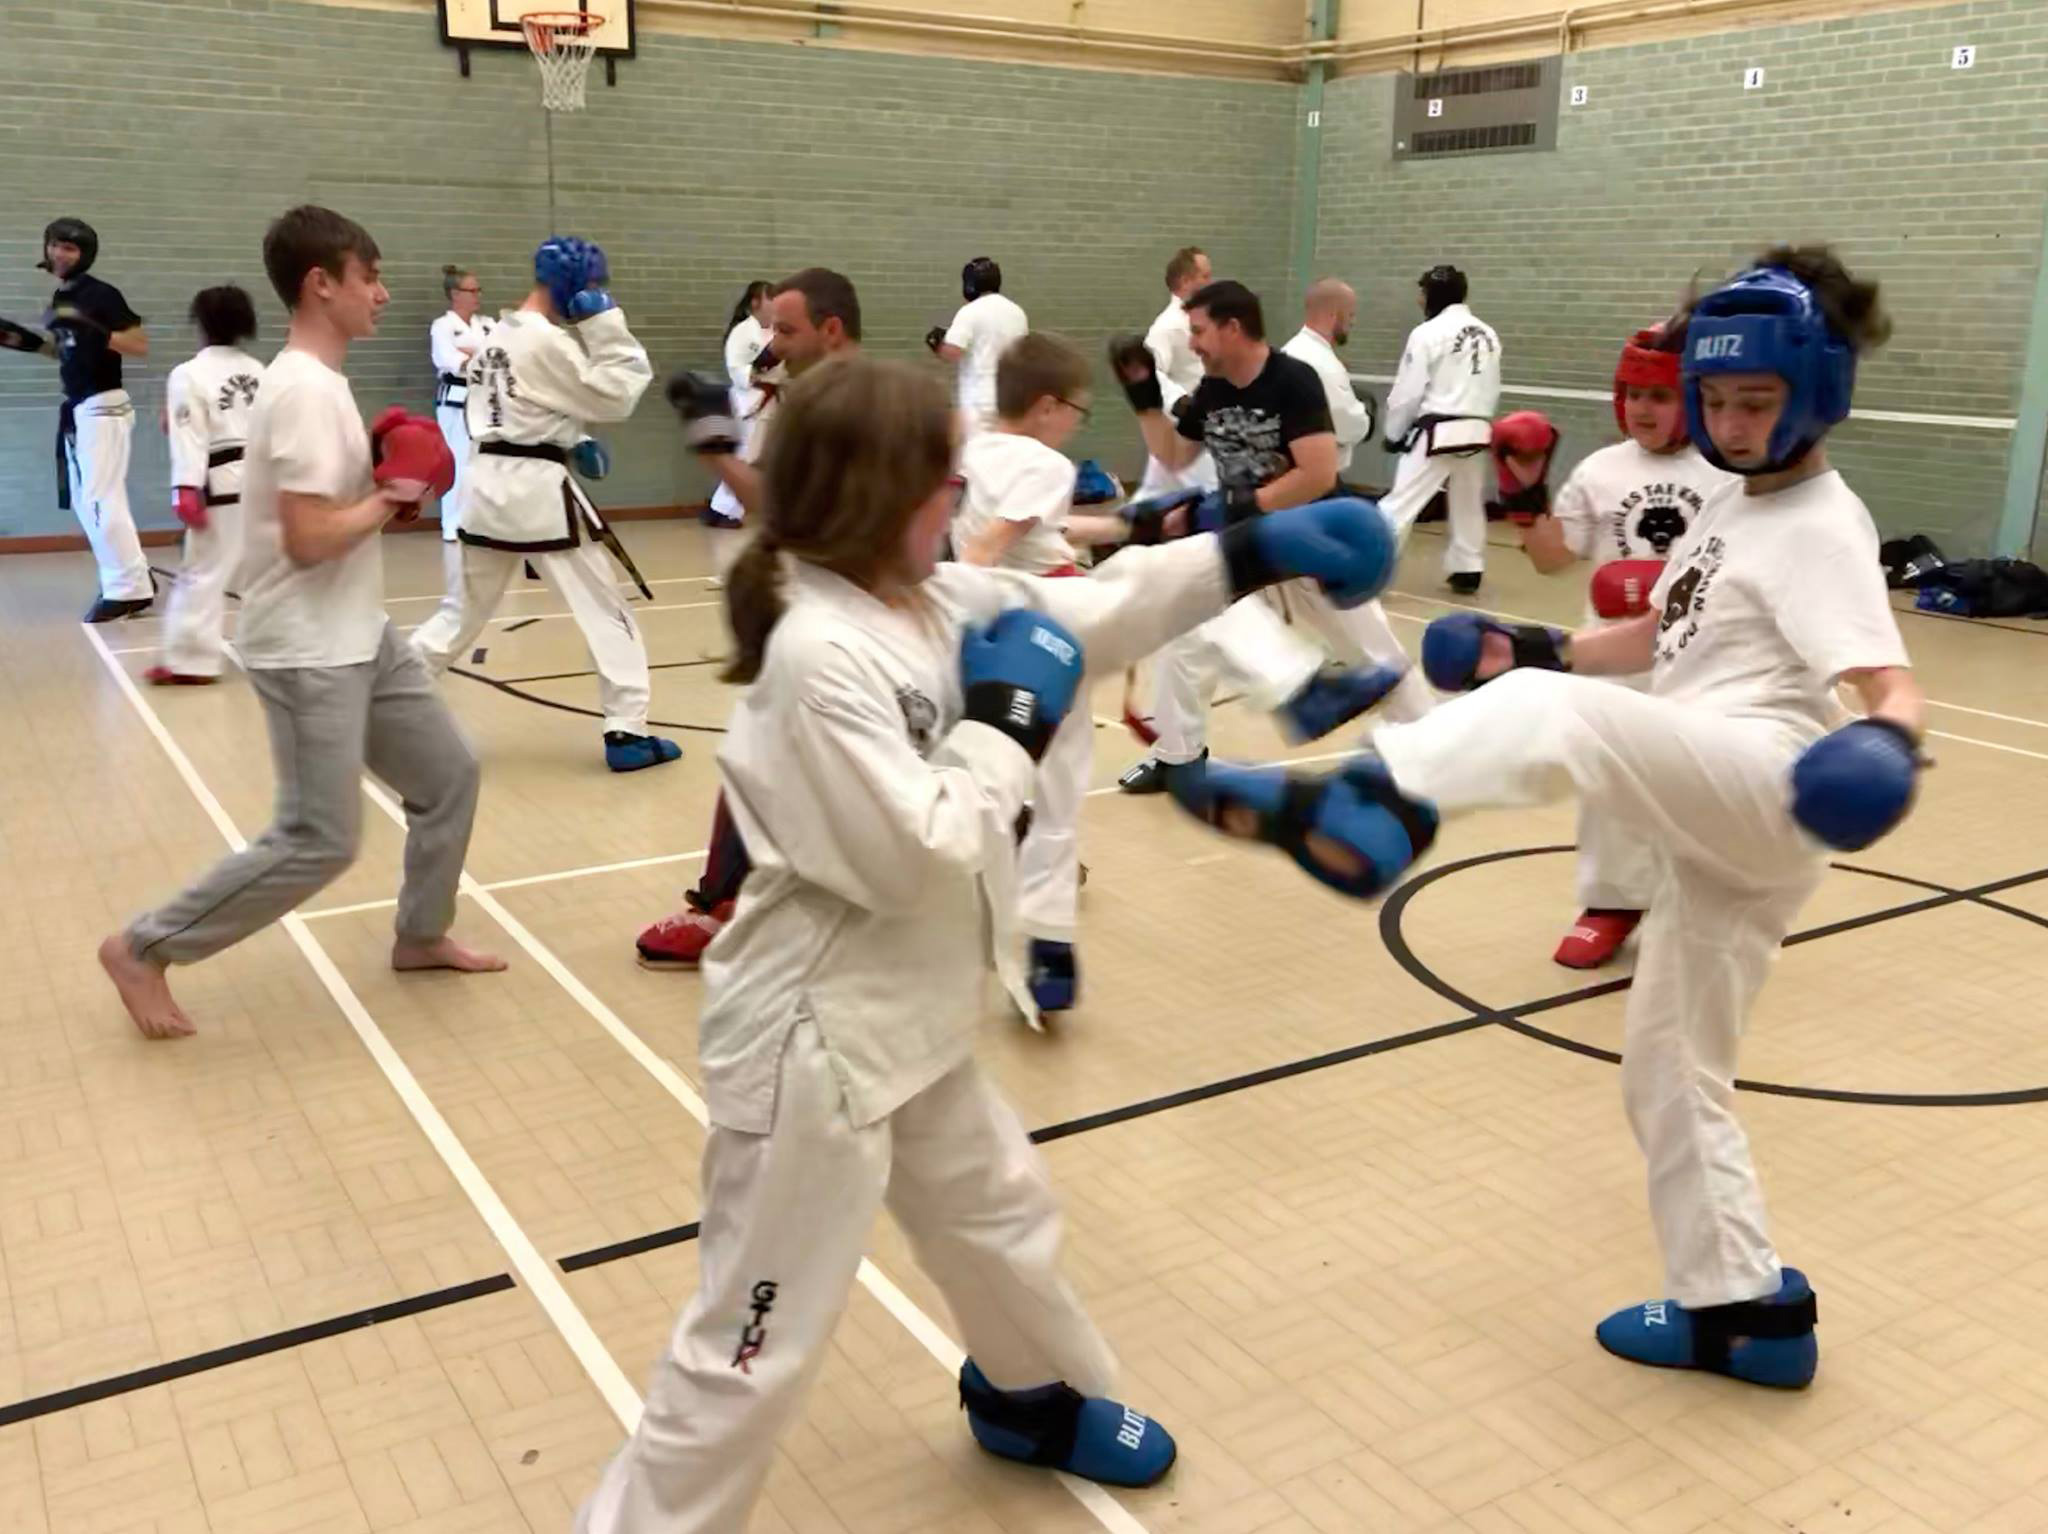 Taekwon-do session